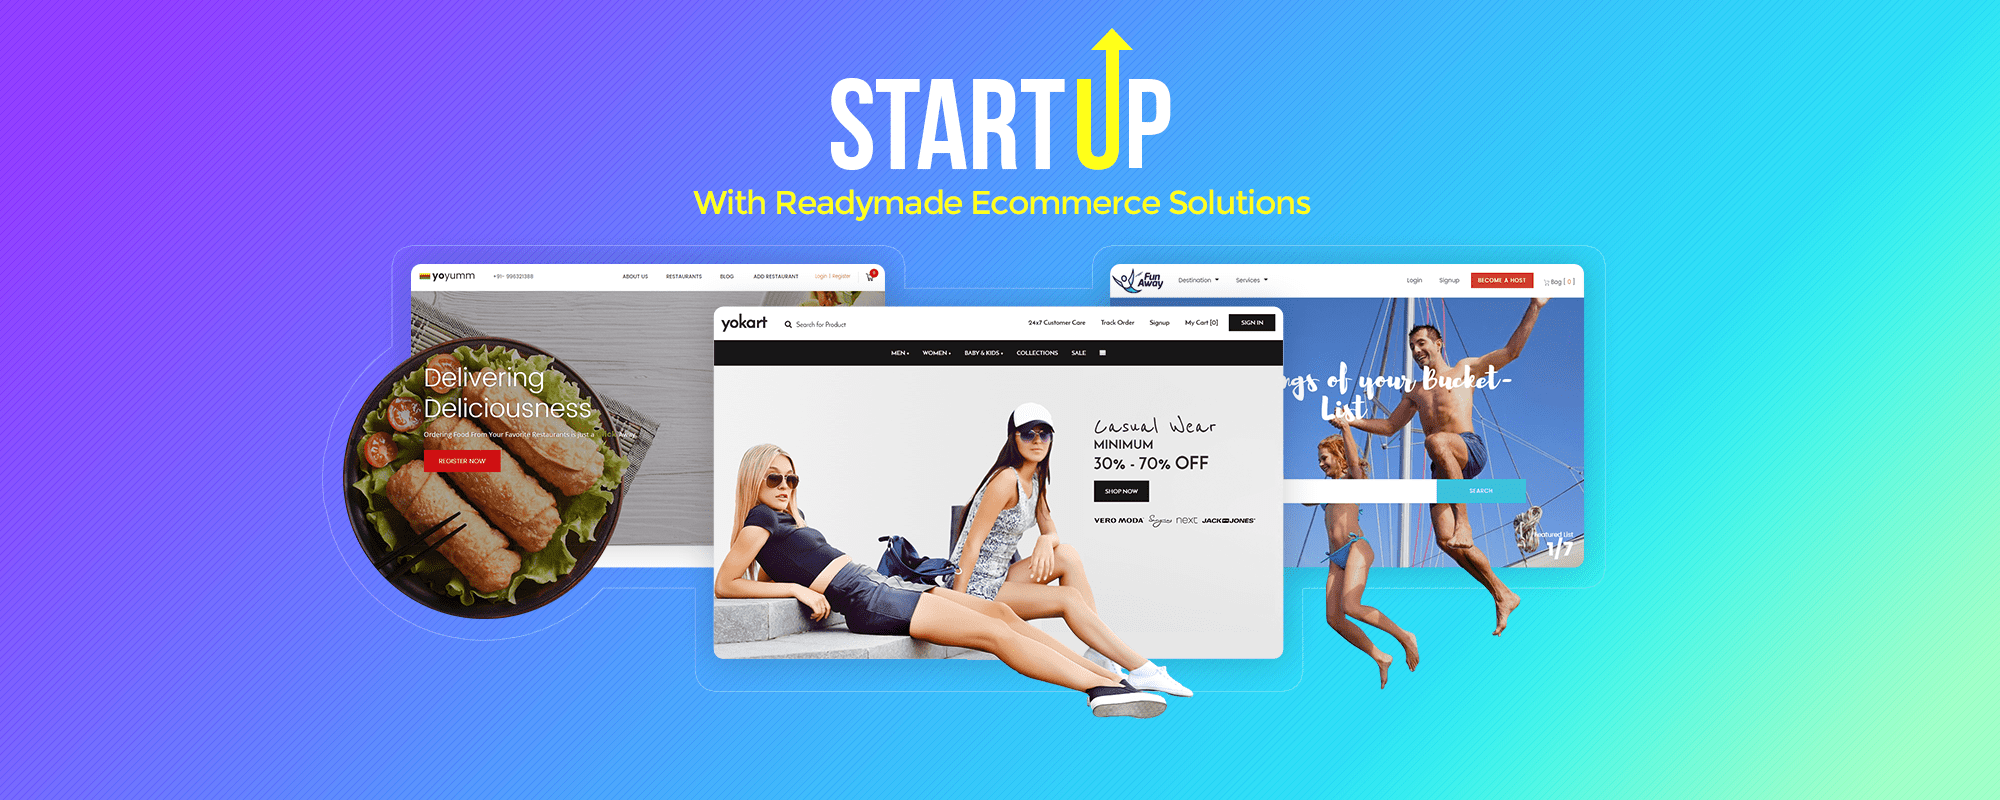 Live the startup dream – Start your online business with these ready to launch ecommerce systems